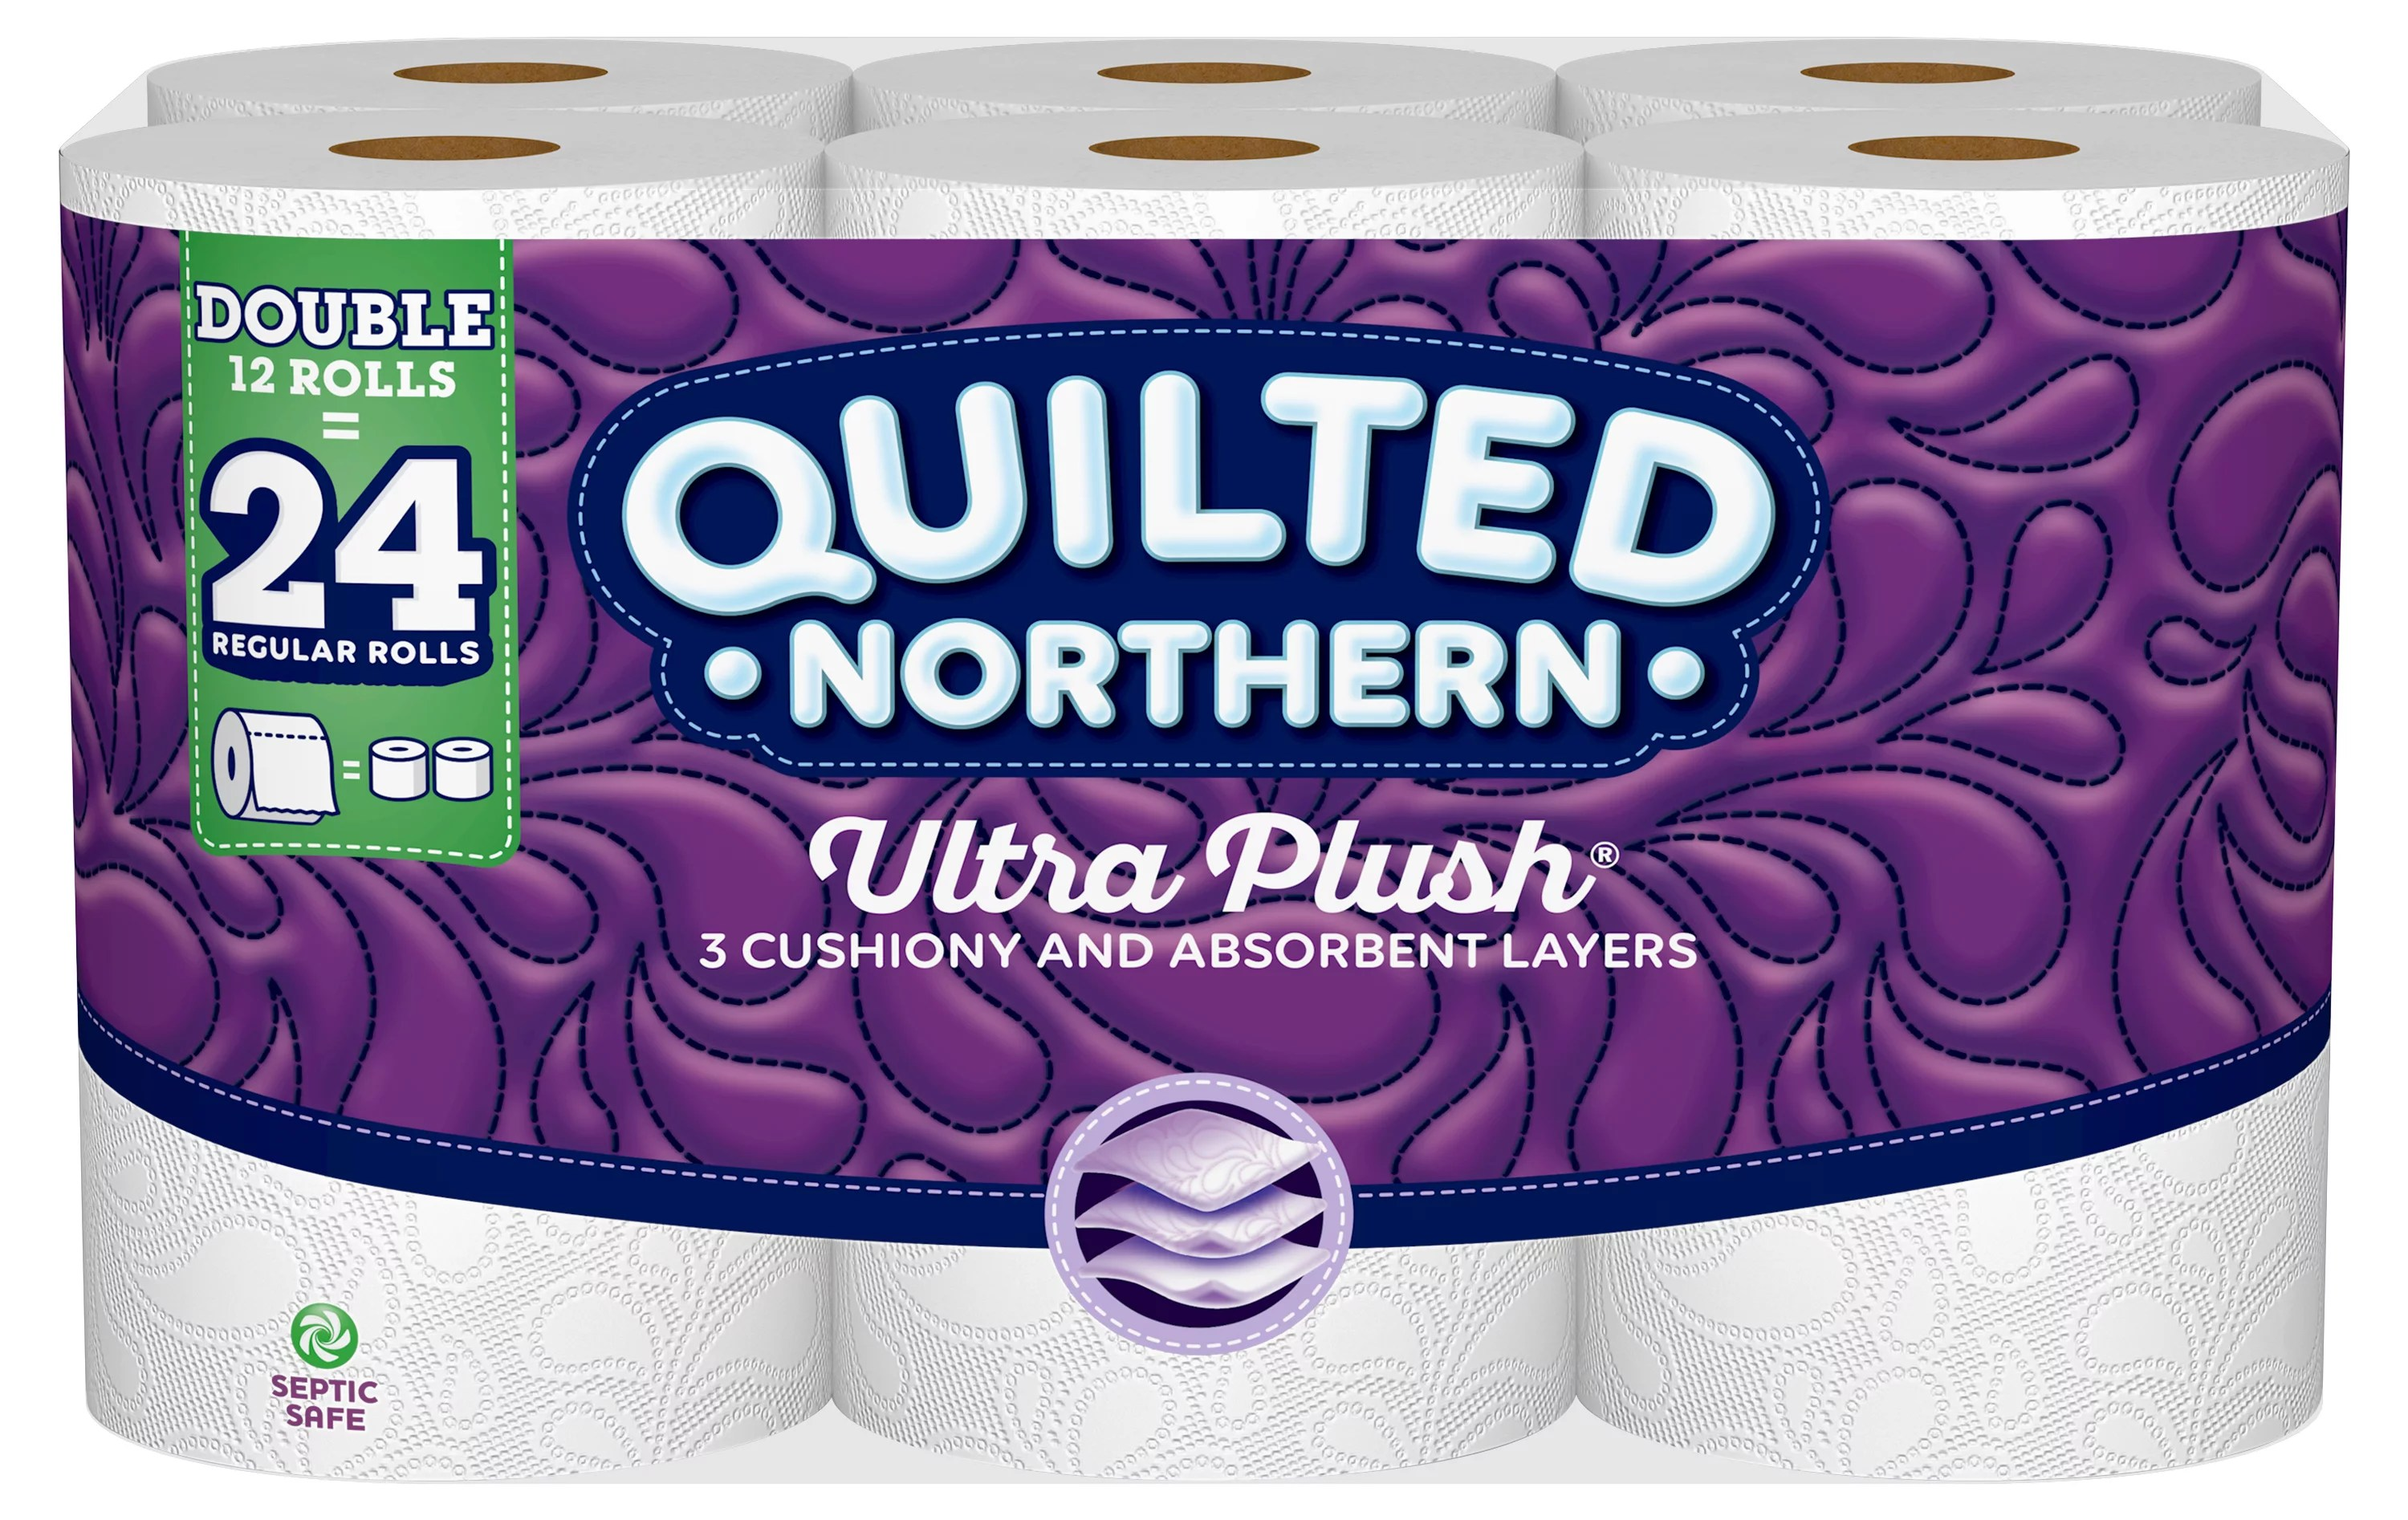 Quilted Northern Ultra Plush Toilet Paper, 12 Double Rolls